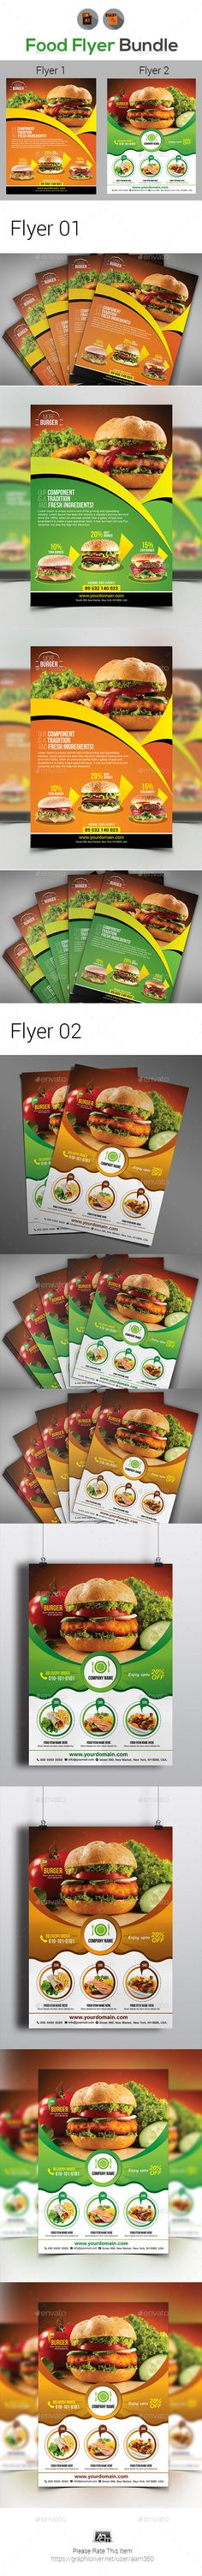 Restaurant  Flyer Bundle by aam360 INFORMATIONS FOR THIS BUNDLE:FEATURES: Flyer 01:Size 8.27鈥漻11.69鈥滲leed: .25鈥漈wo color variations (Green, Red) Fully editable Illus